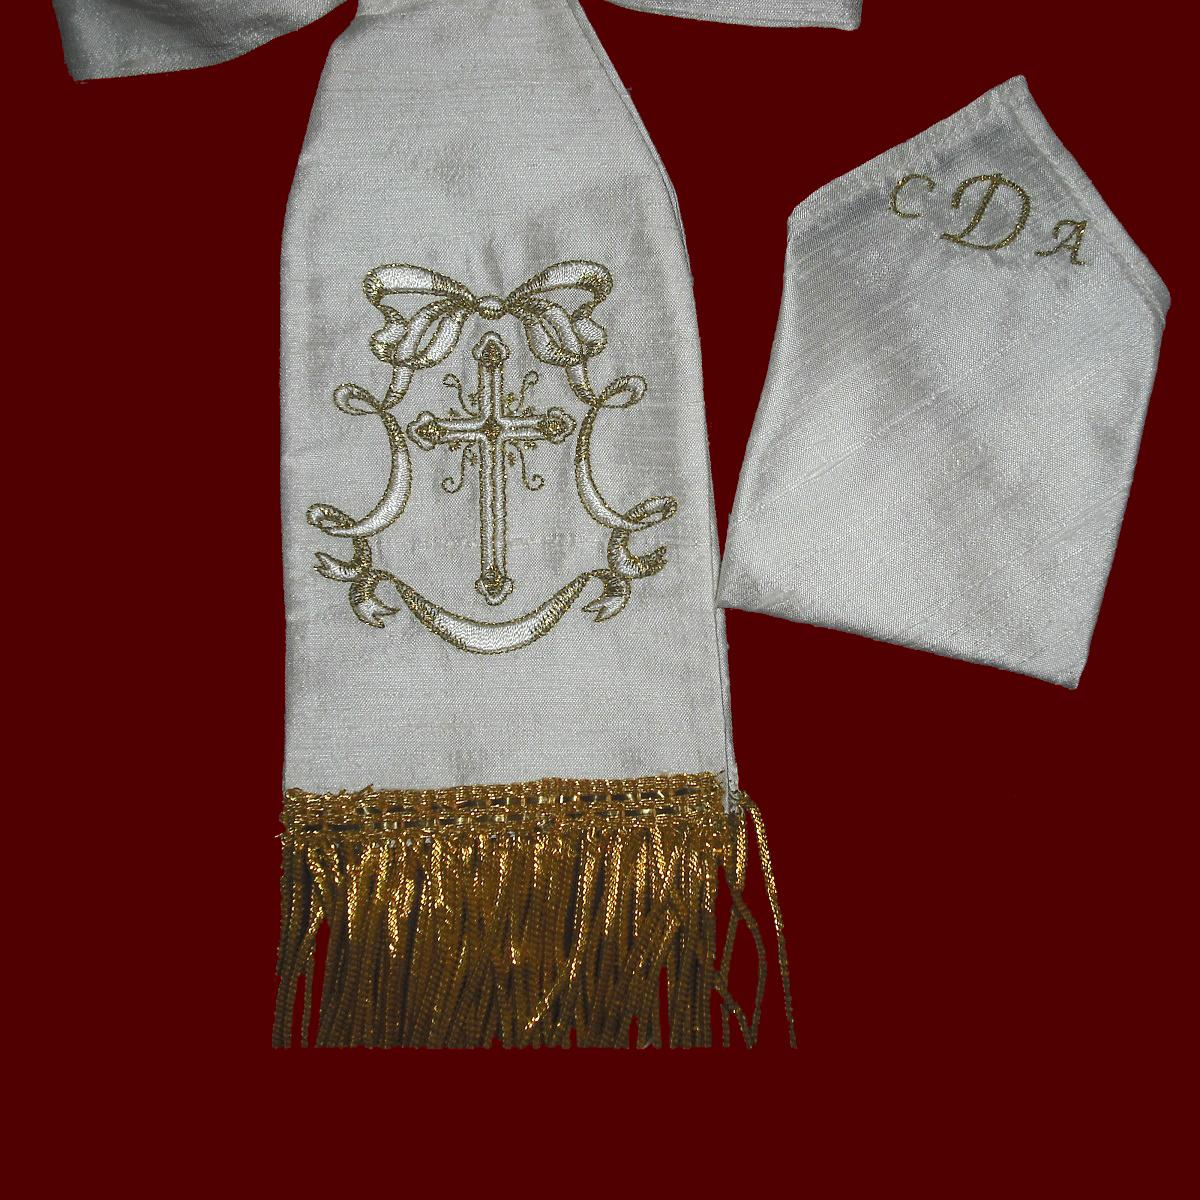 communion armband  u0026 pocket square with metallic accents - boy communion accessories